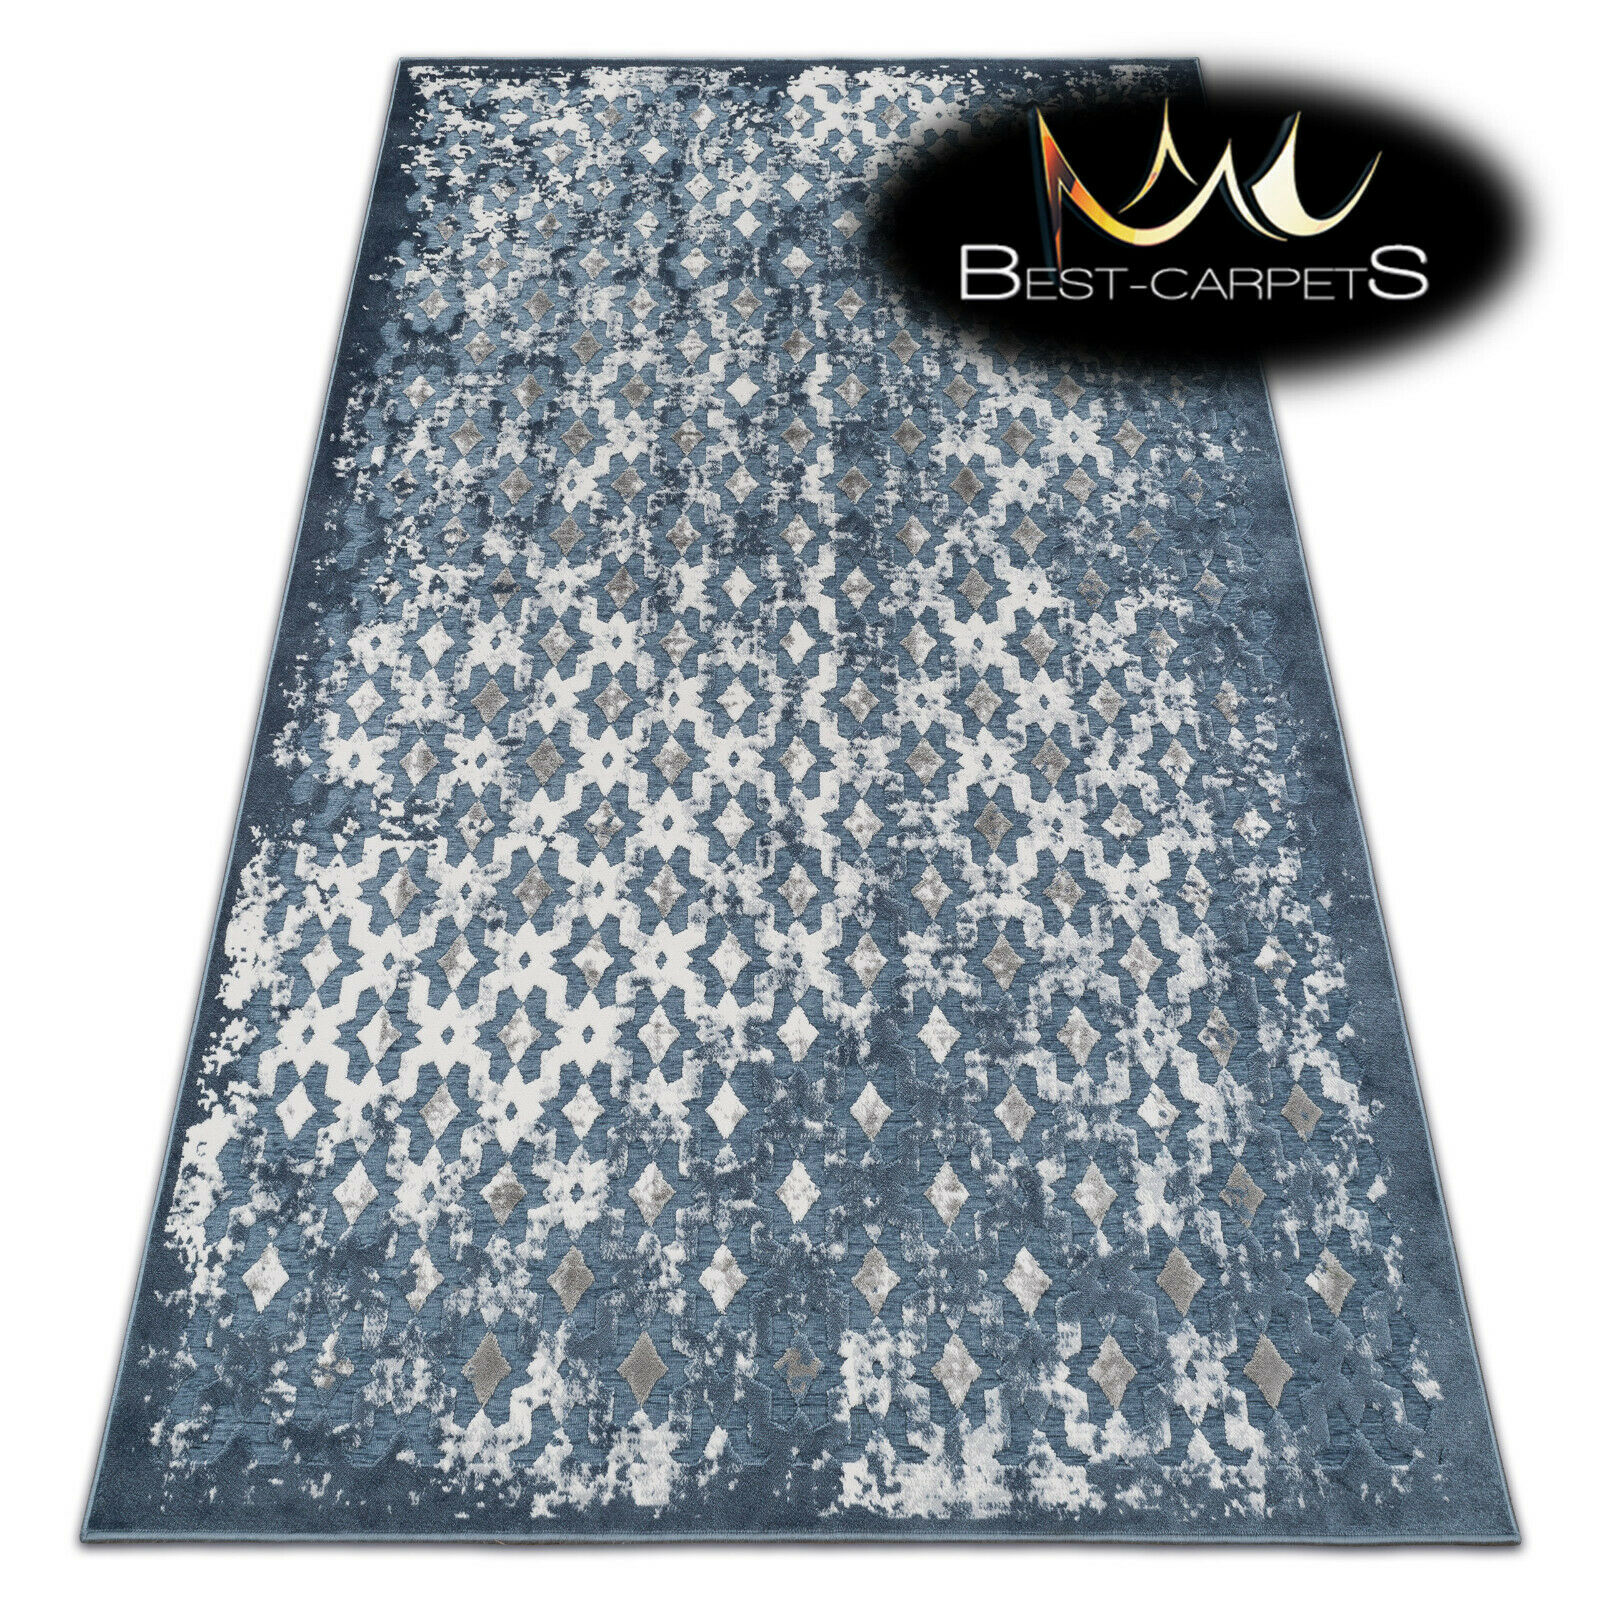 Very Soft Rug Rug Rug 'YAZZ' 100% Acrylic High Quality Unique Design Oriental Blau 930da9